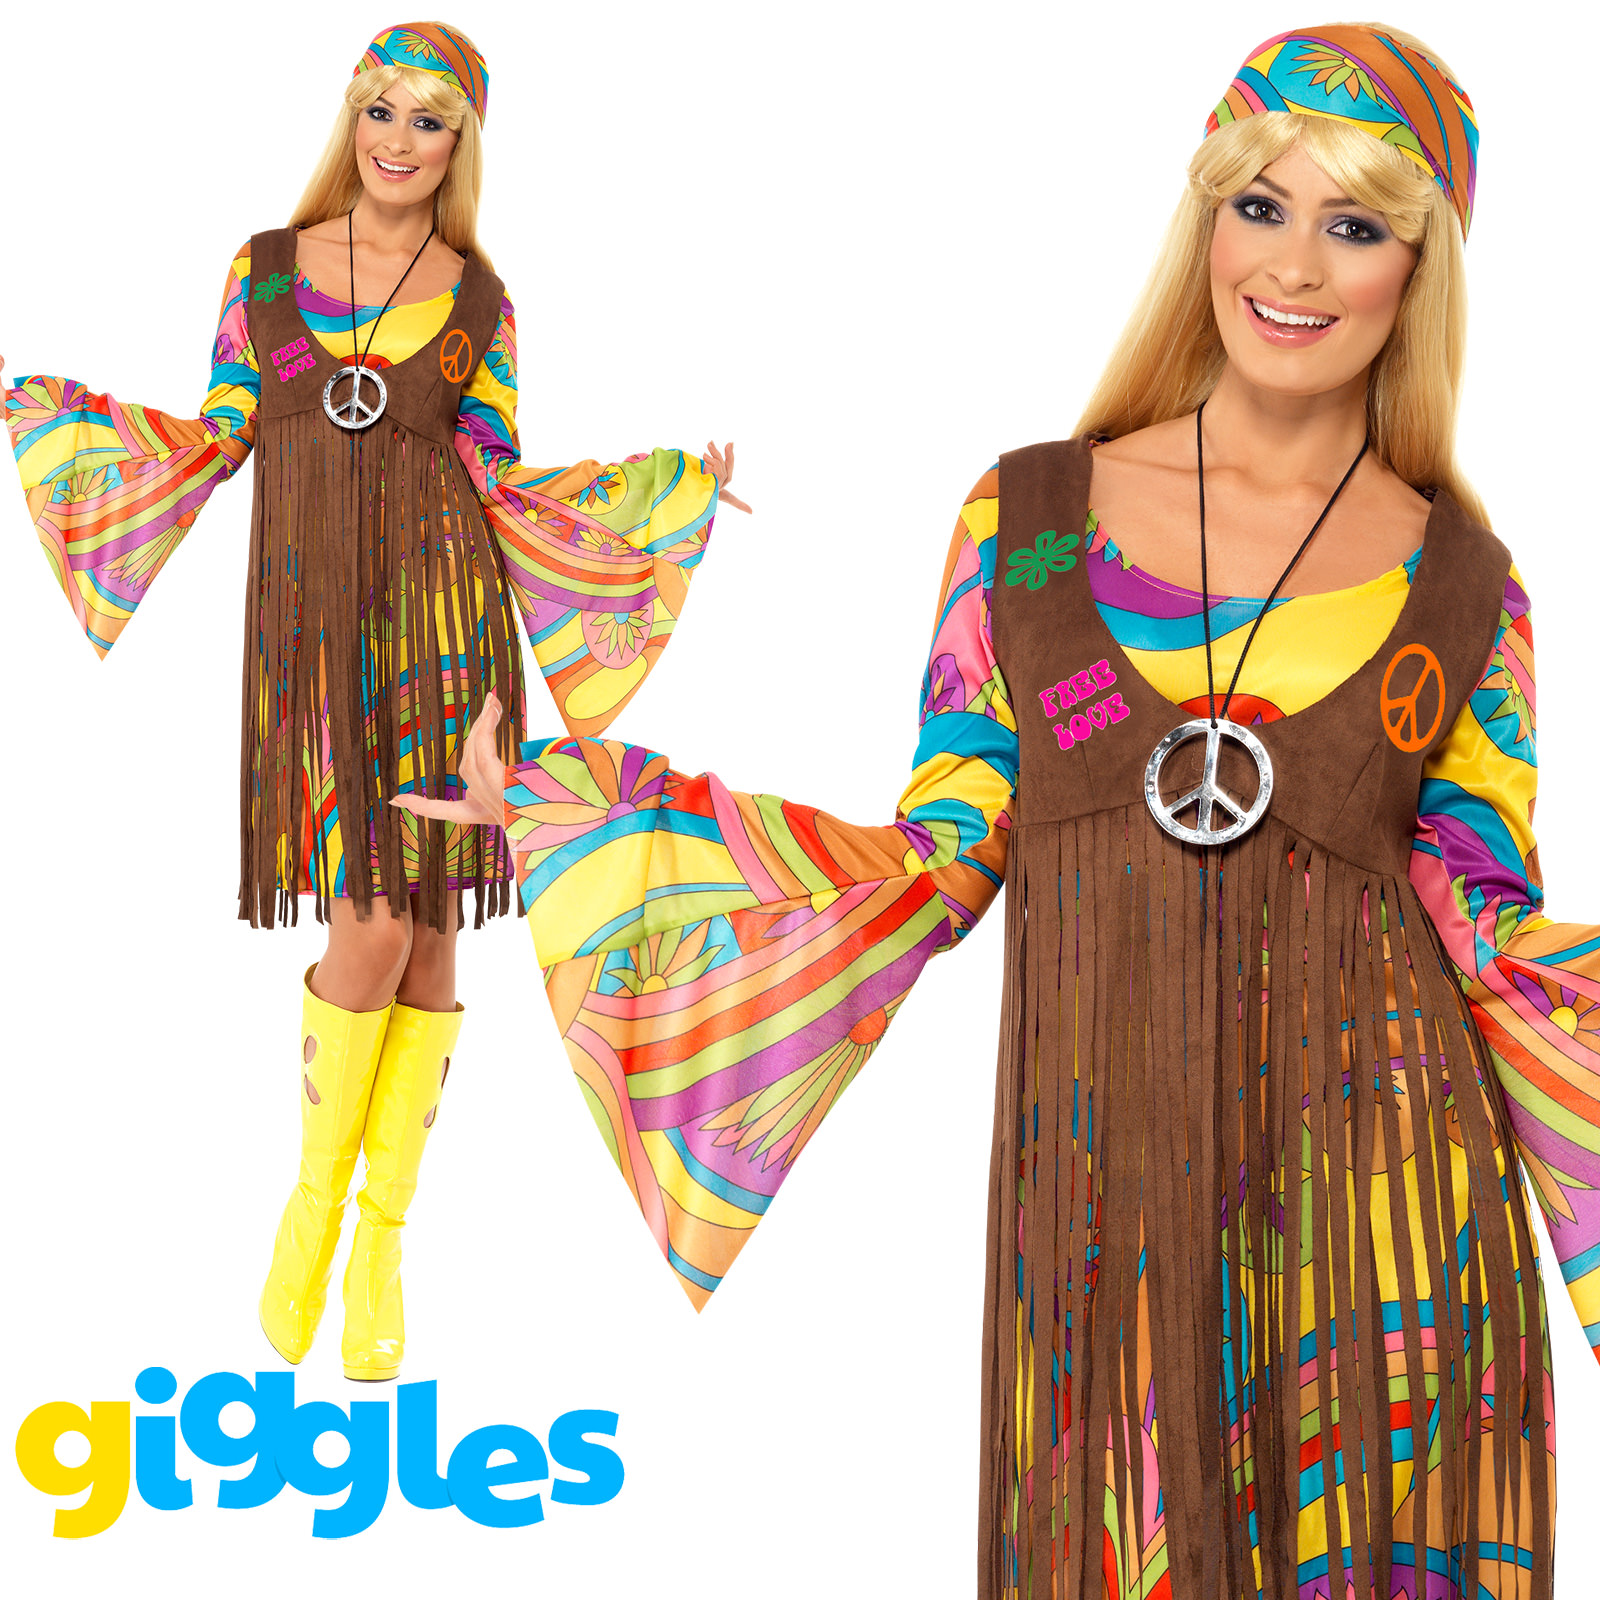 hippy costume 60s 1970s flower power hippie womens ladies fancy dress outfit ebay. Black Bedroom Furniture Sets. Home Design Ideas